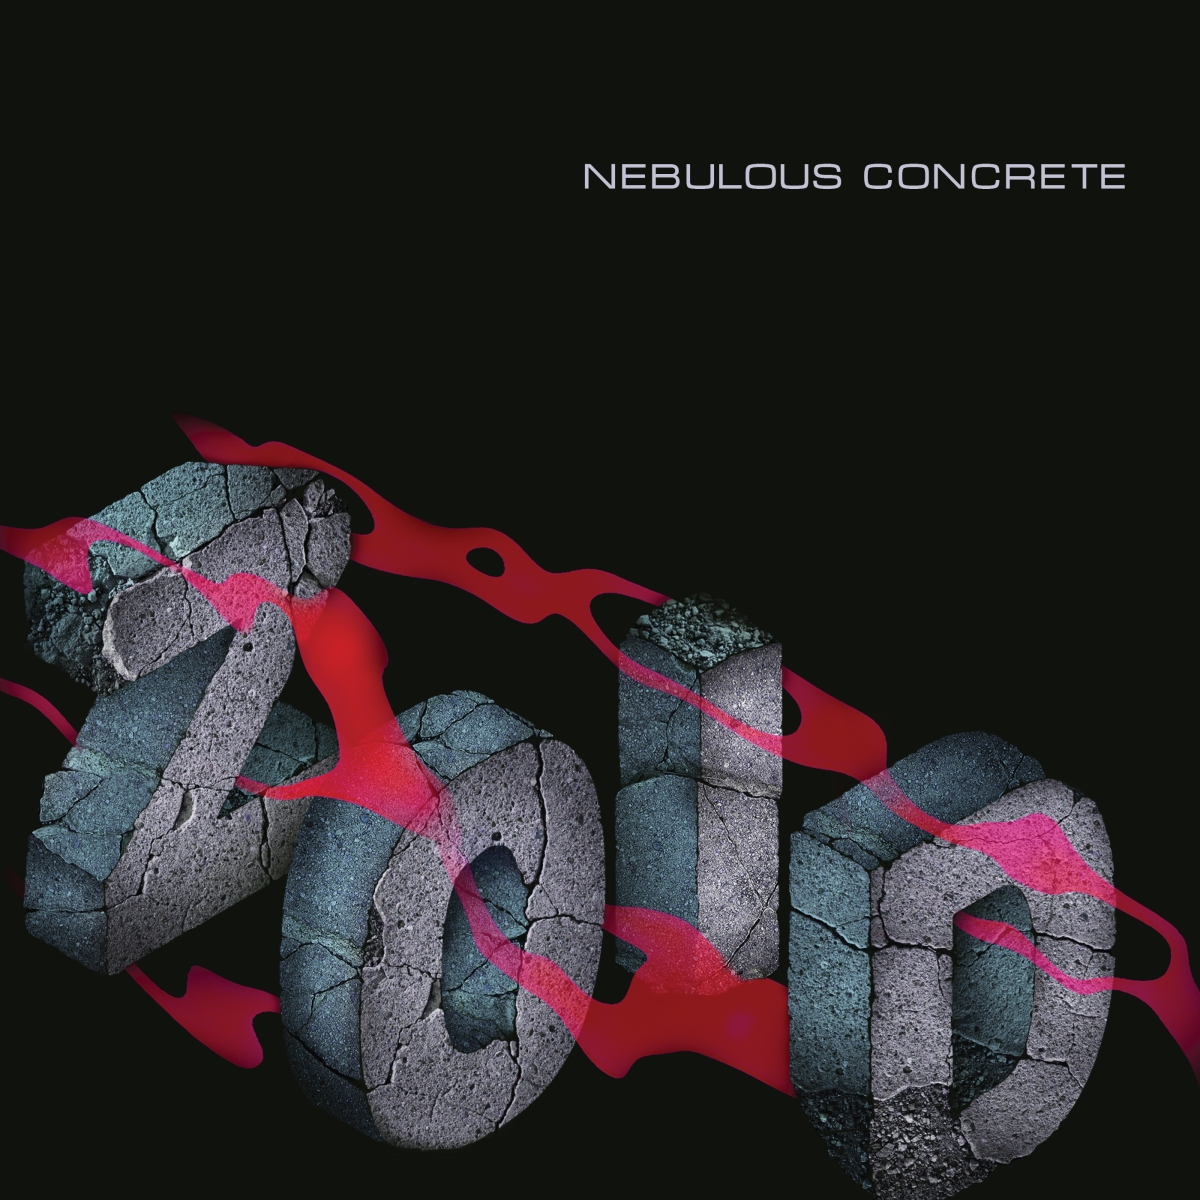 Premiere: Zoid's Nebulous Concrete is a jazzy Braindance odyssey